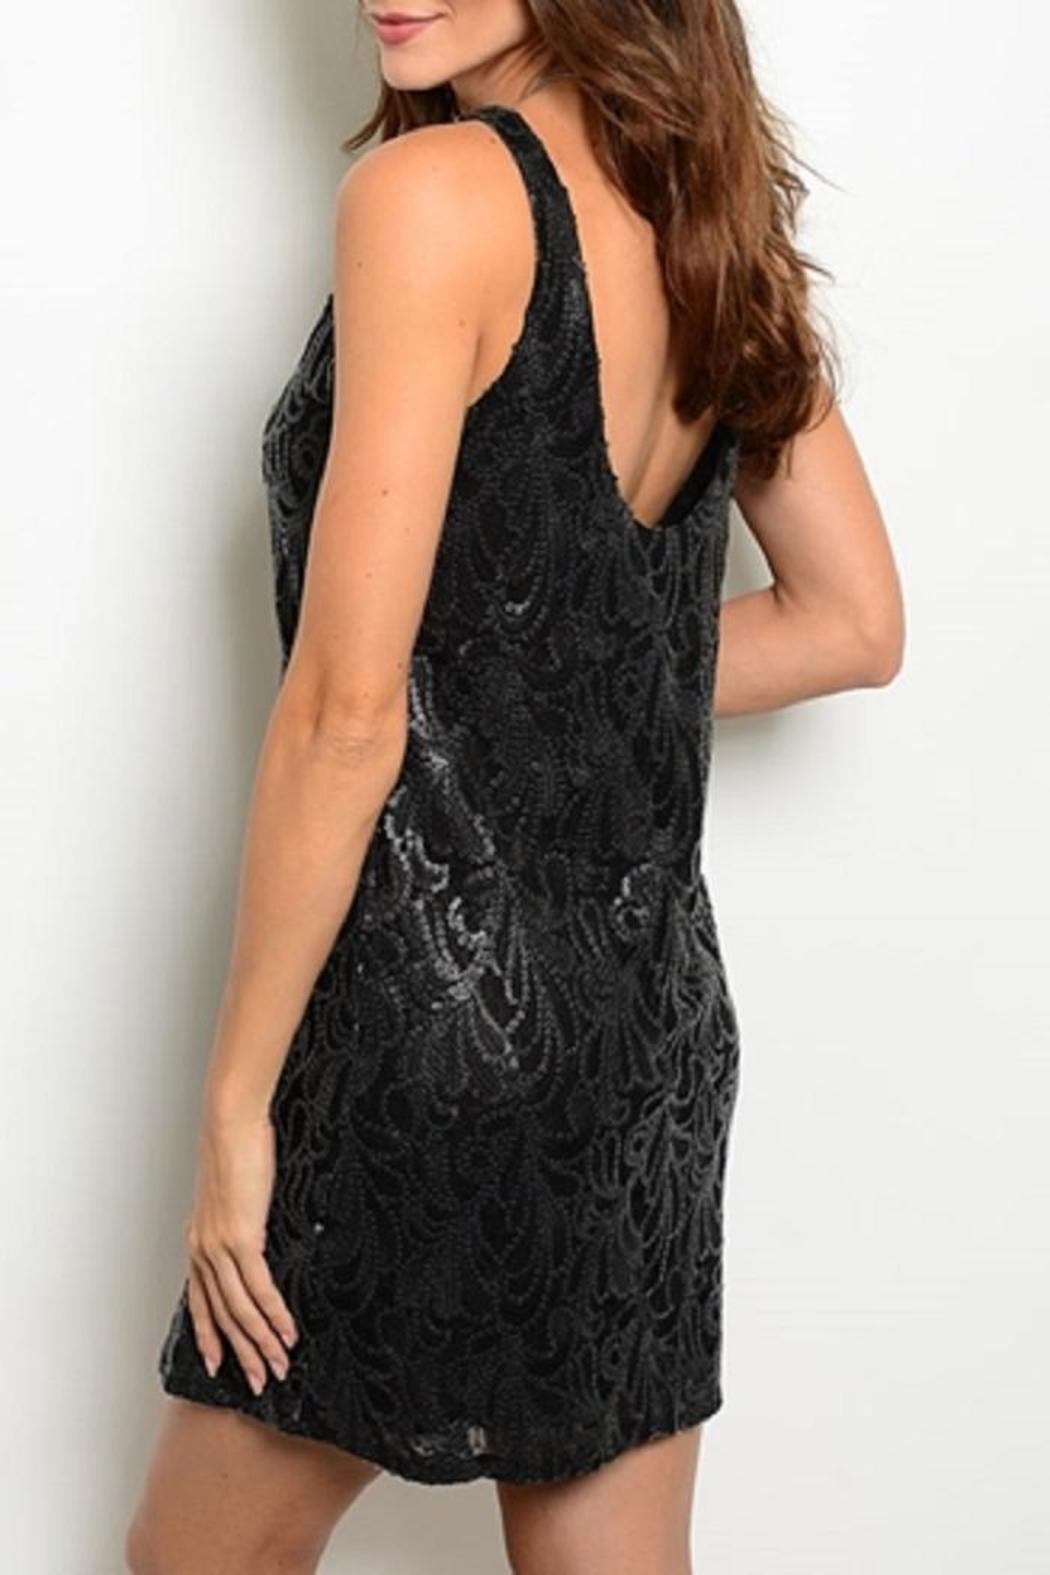 Adore Clothes & More Black Patterned Dress - Front Full Image